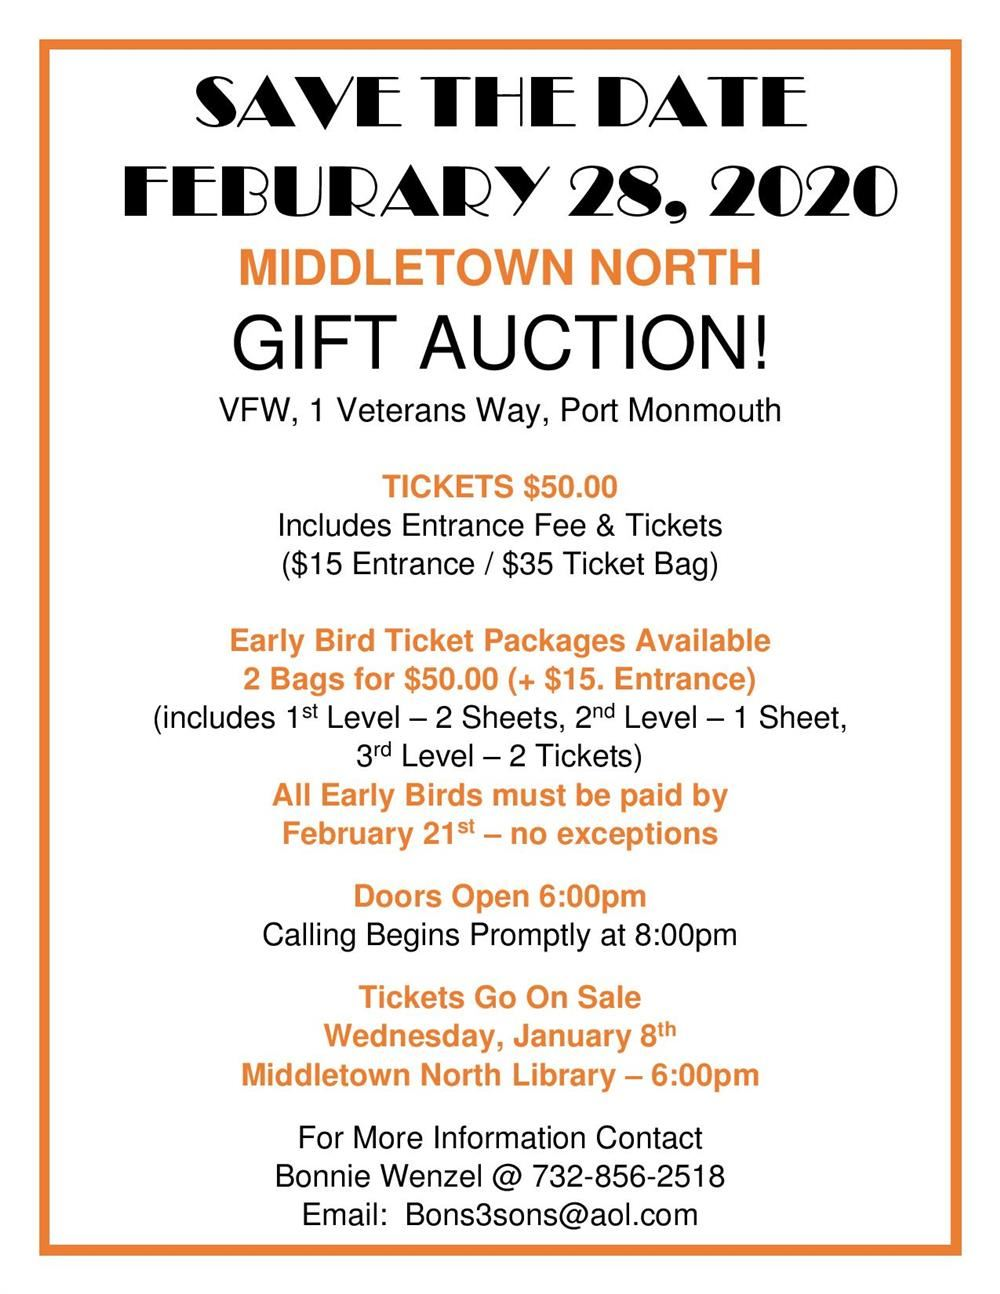 MHSN PFA FEBRUARY GIFT AUCTION information page thumbnail image